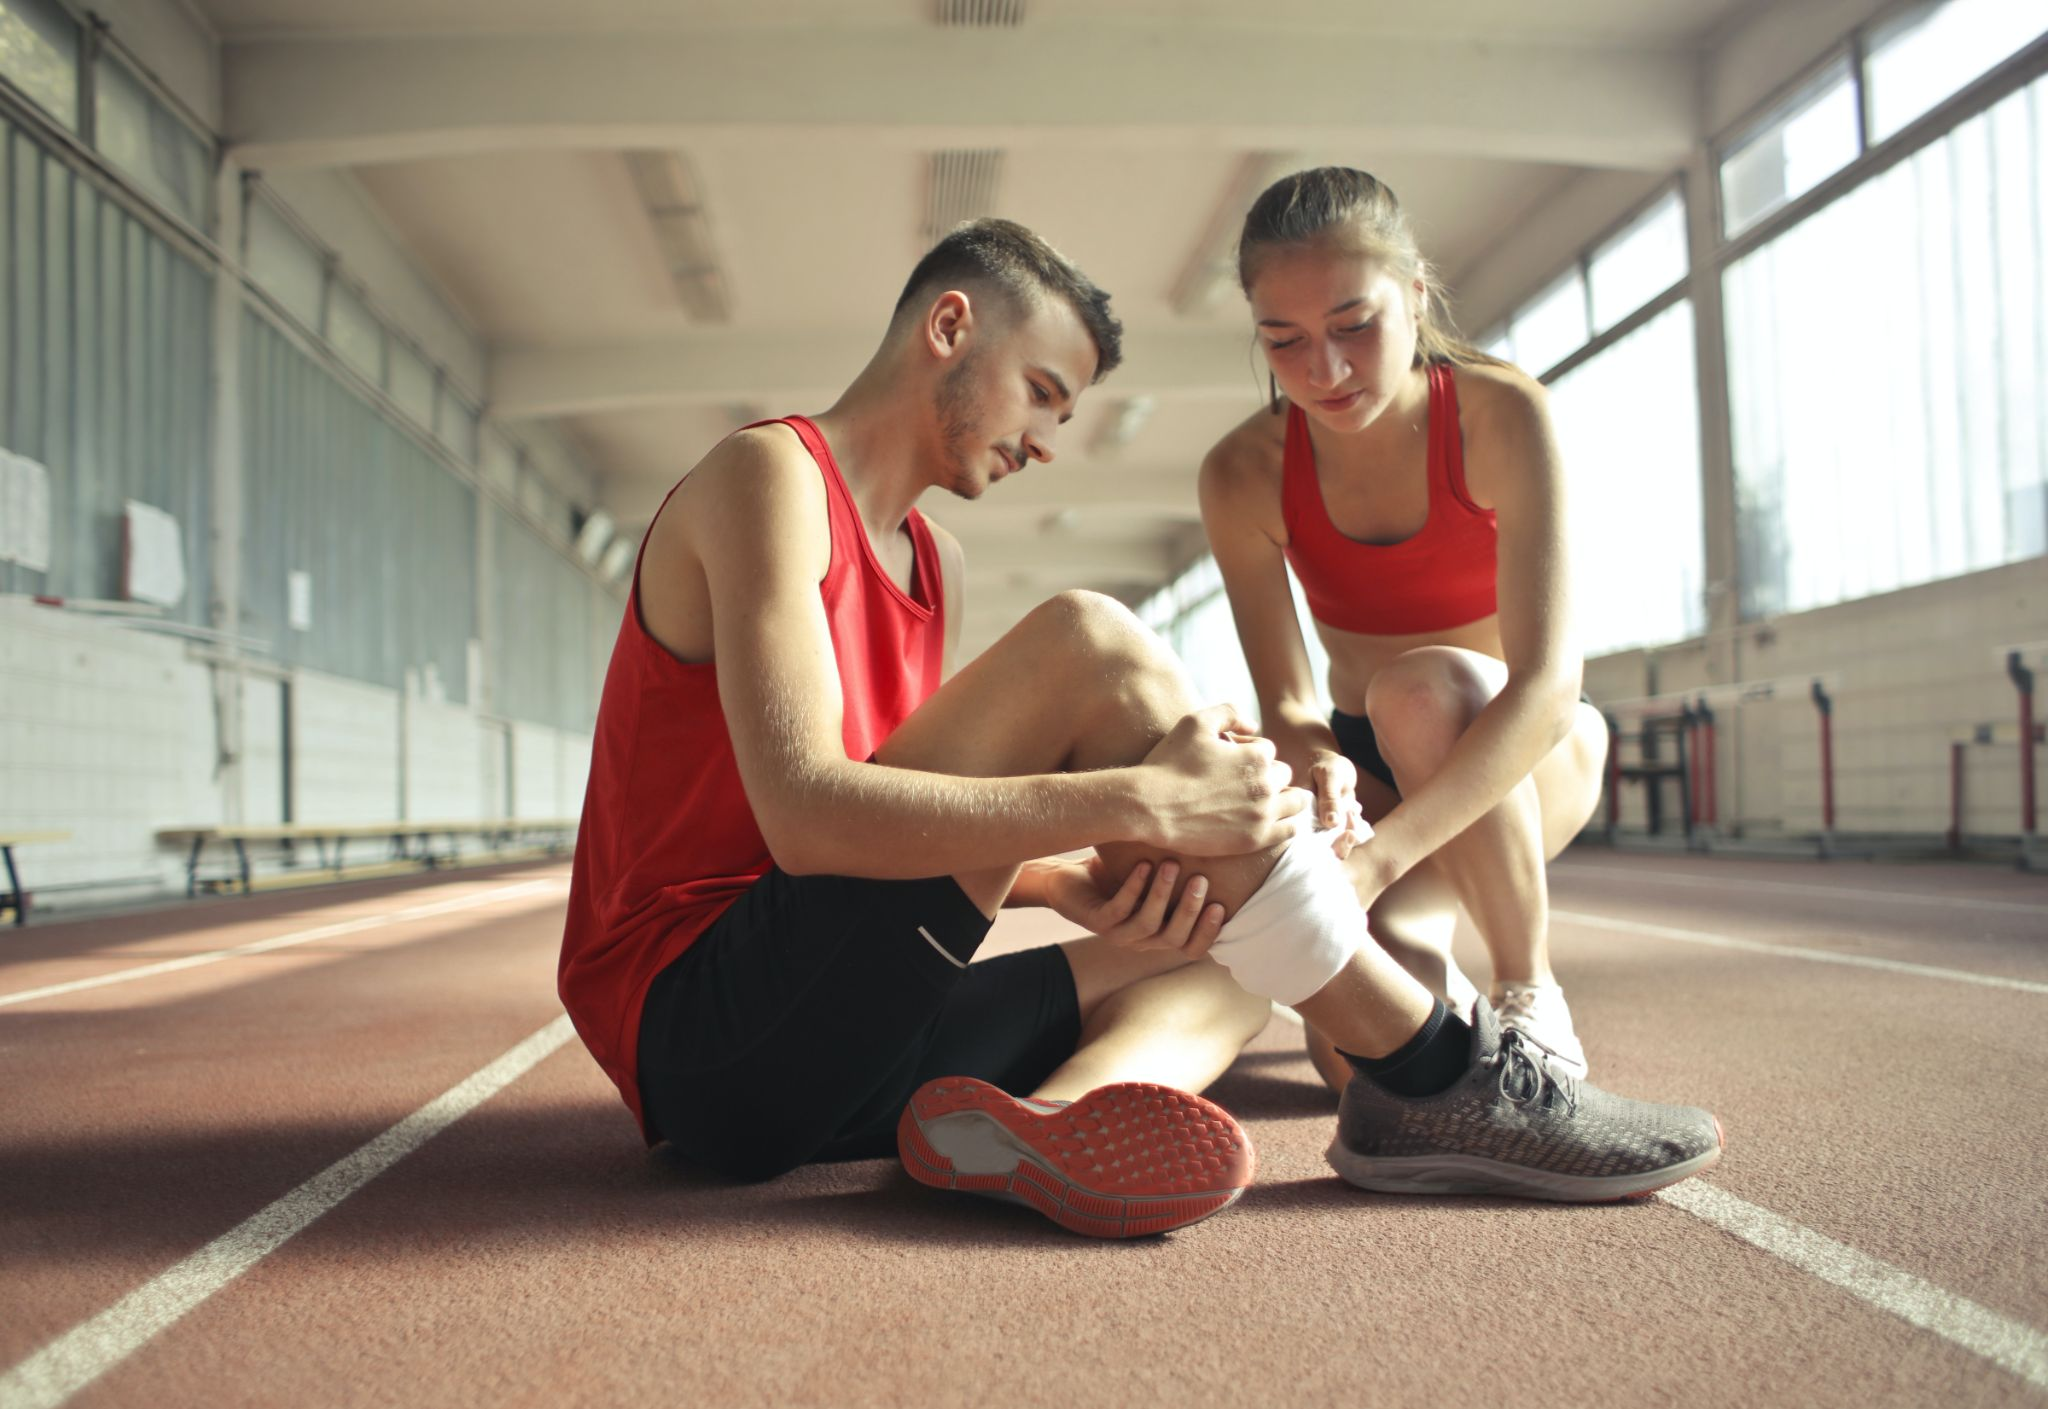 4 Ways To Speed Up The Recovery Time For Your Body